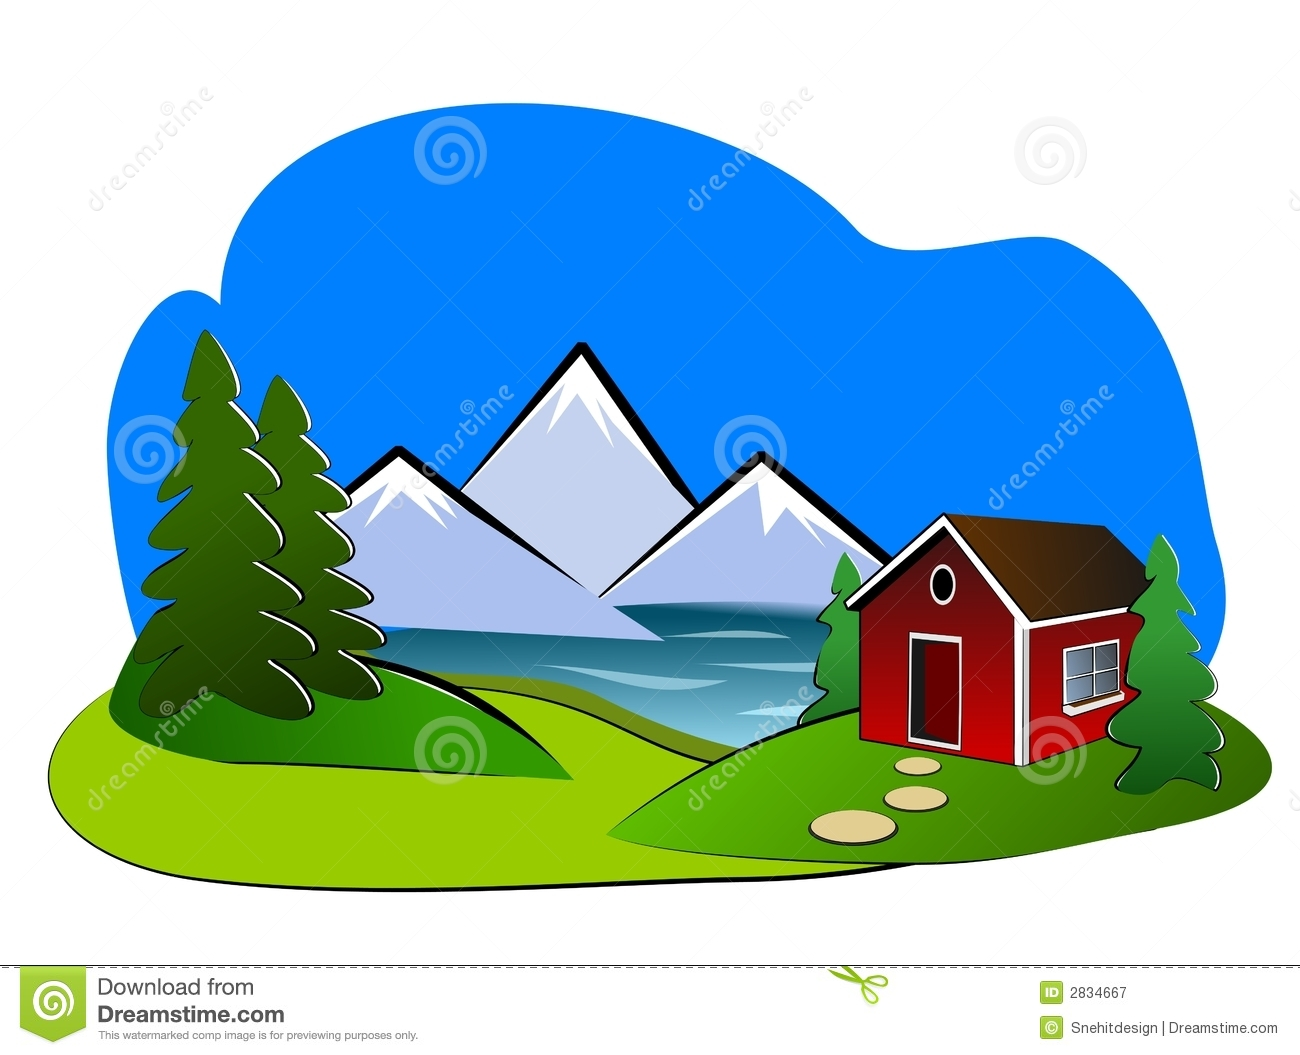 Landscape Clipart Royalty Free Stock Photography Image 2834667